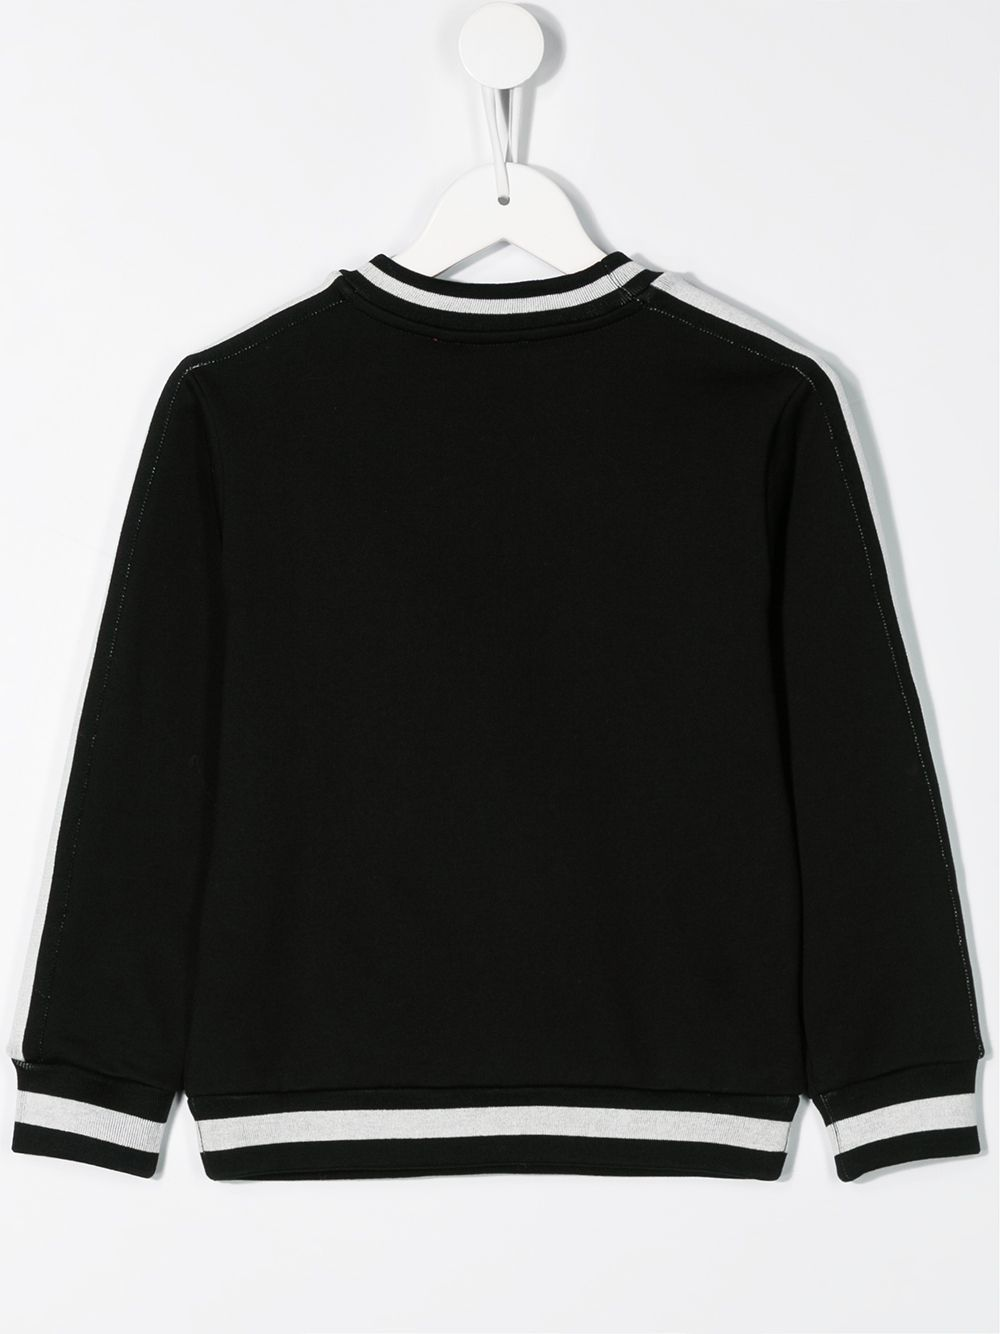 DOLCE & GABBANA KIDS contrast strip logo jumper Black